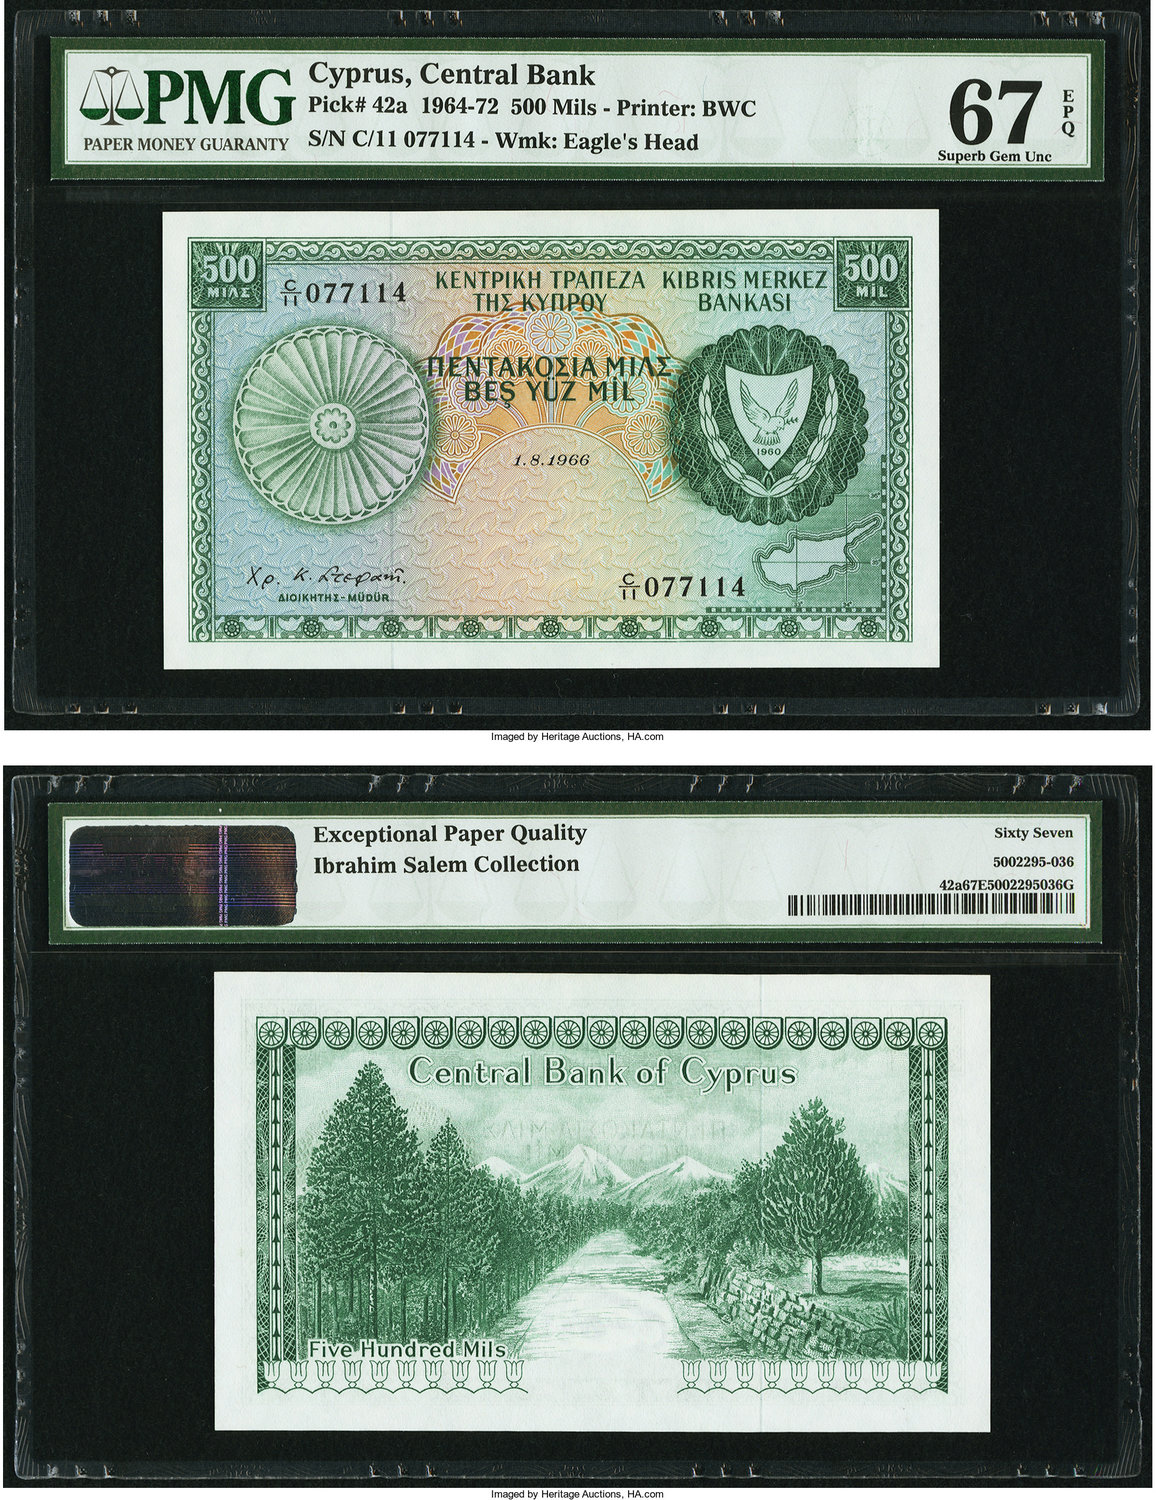 World Currency Cyprus Central Bank Of 500 Mils 1 8 1966 Pick 42a Pmg Has Graded This Note Superb Gem Unc 67